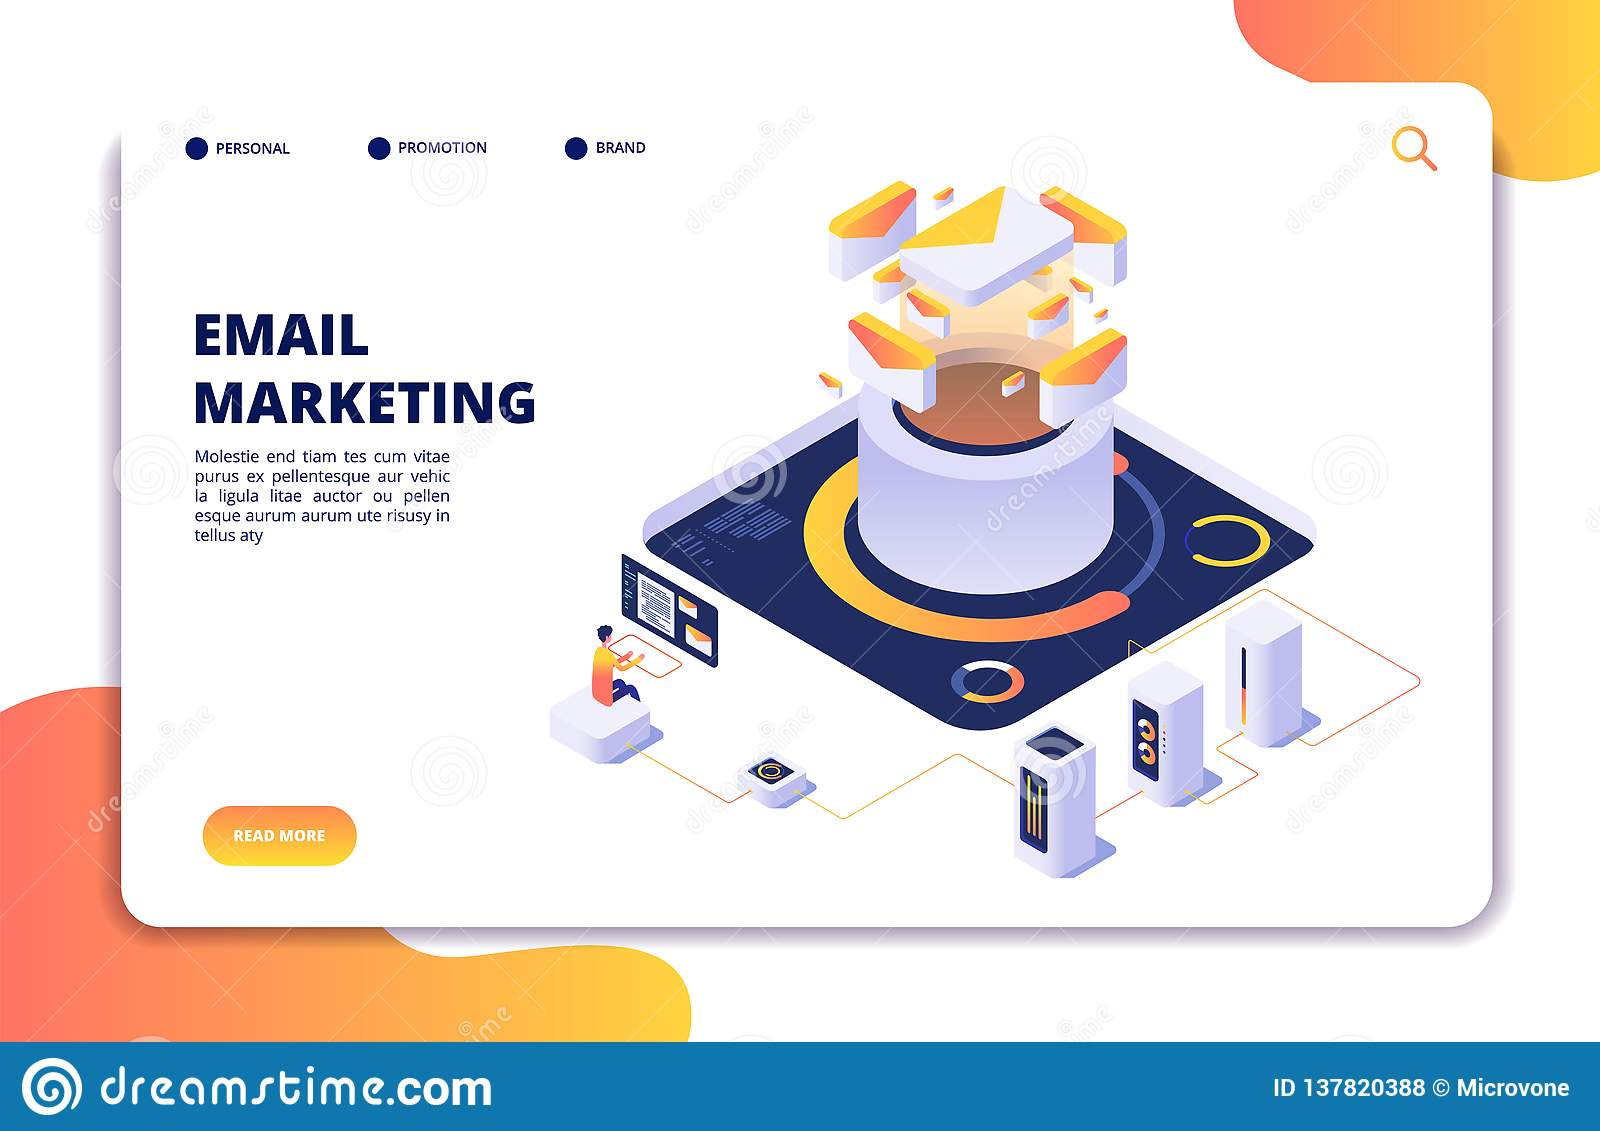 Email marketing. Mail automation strategy. Email outbound newsletter campaign, mailing spammer services isometric vector